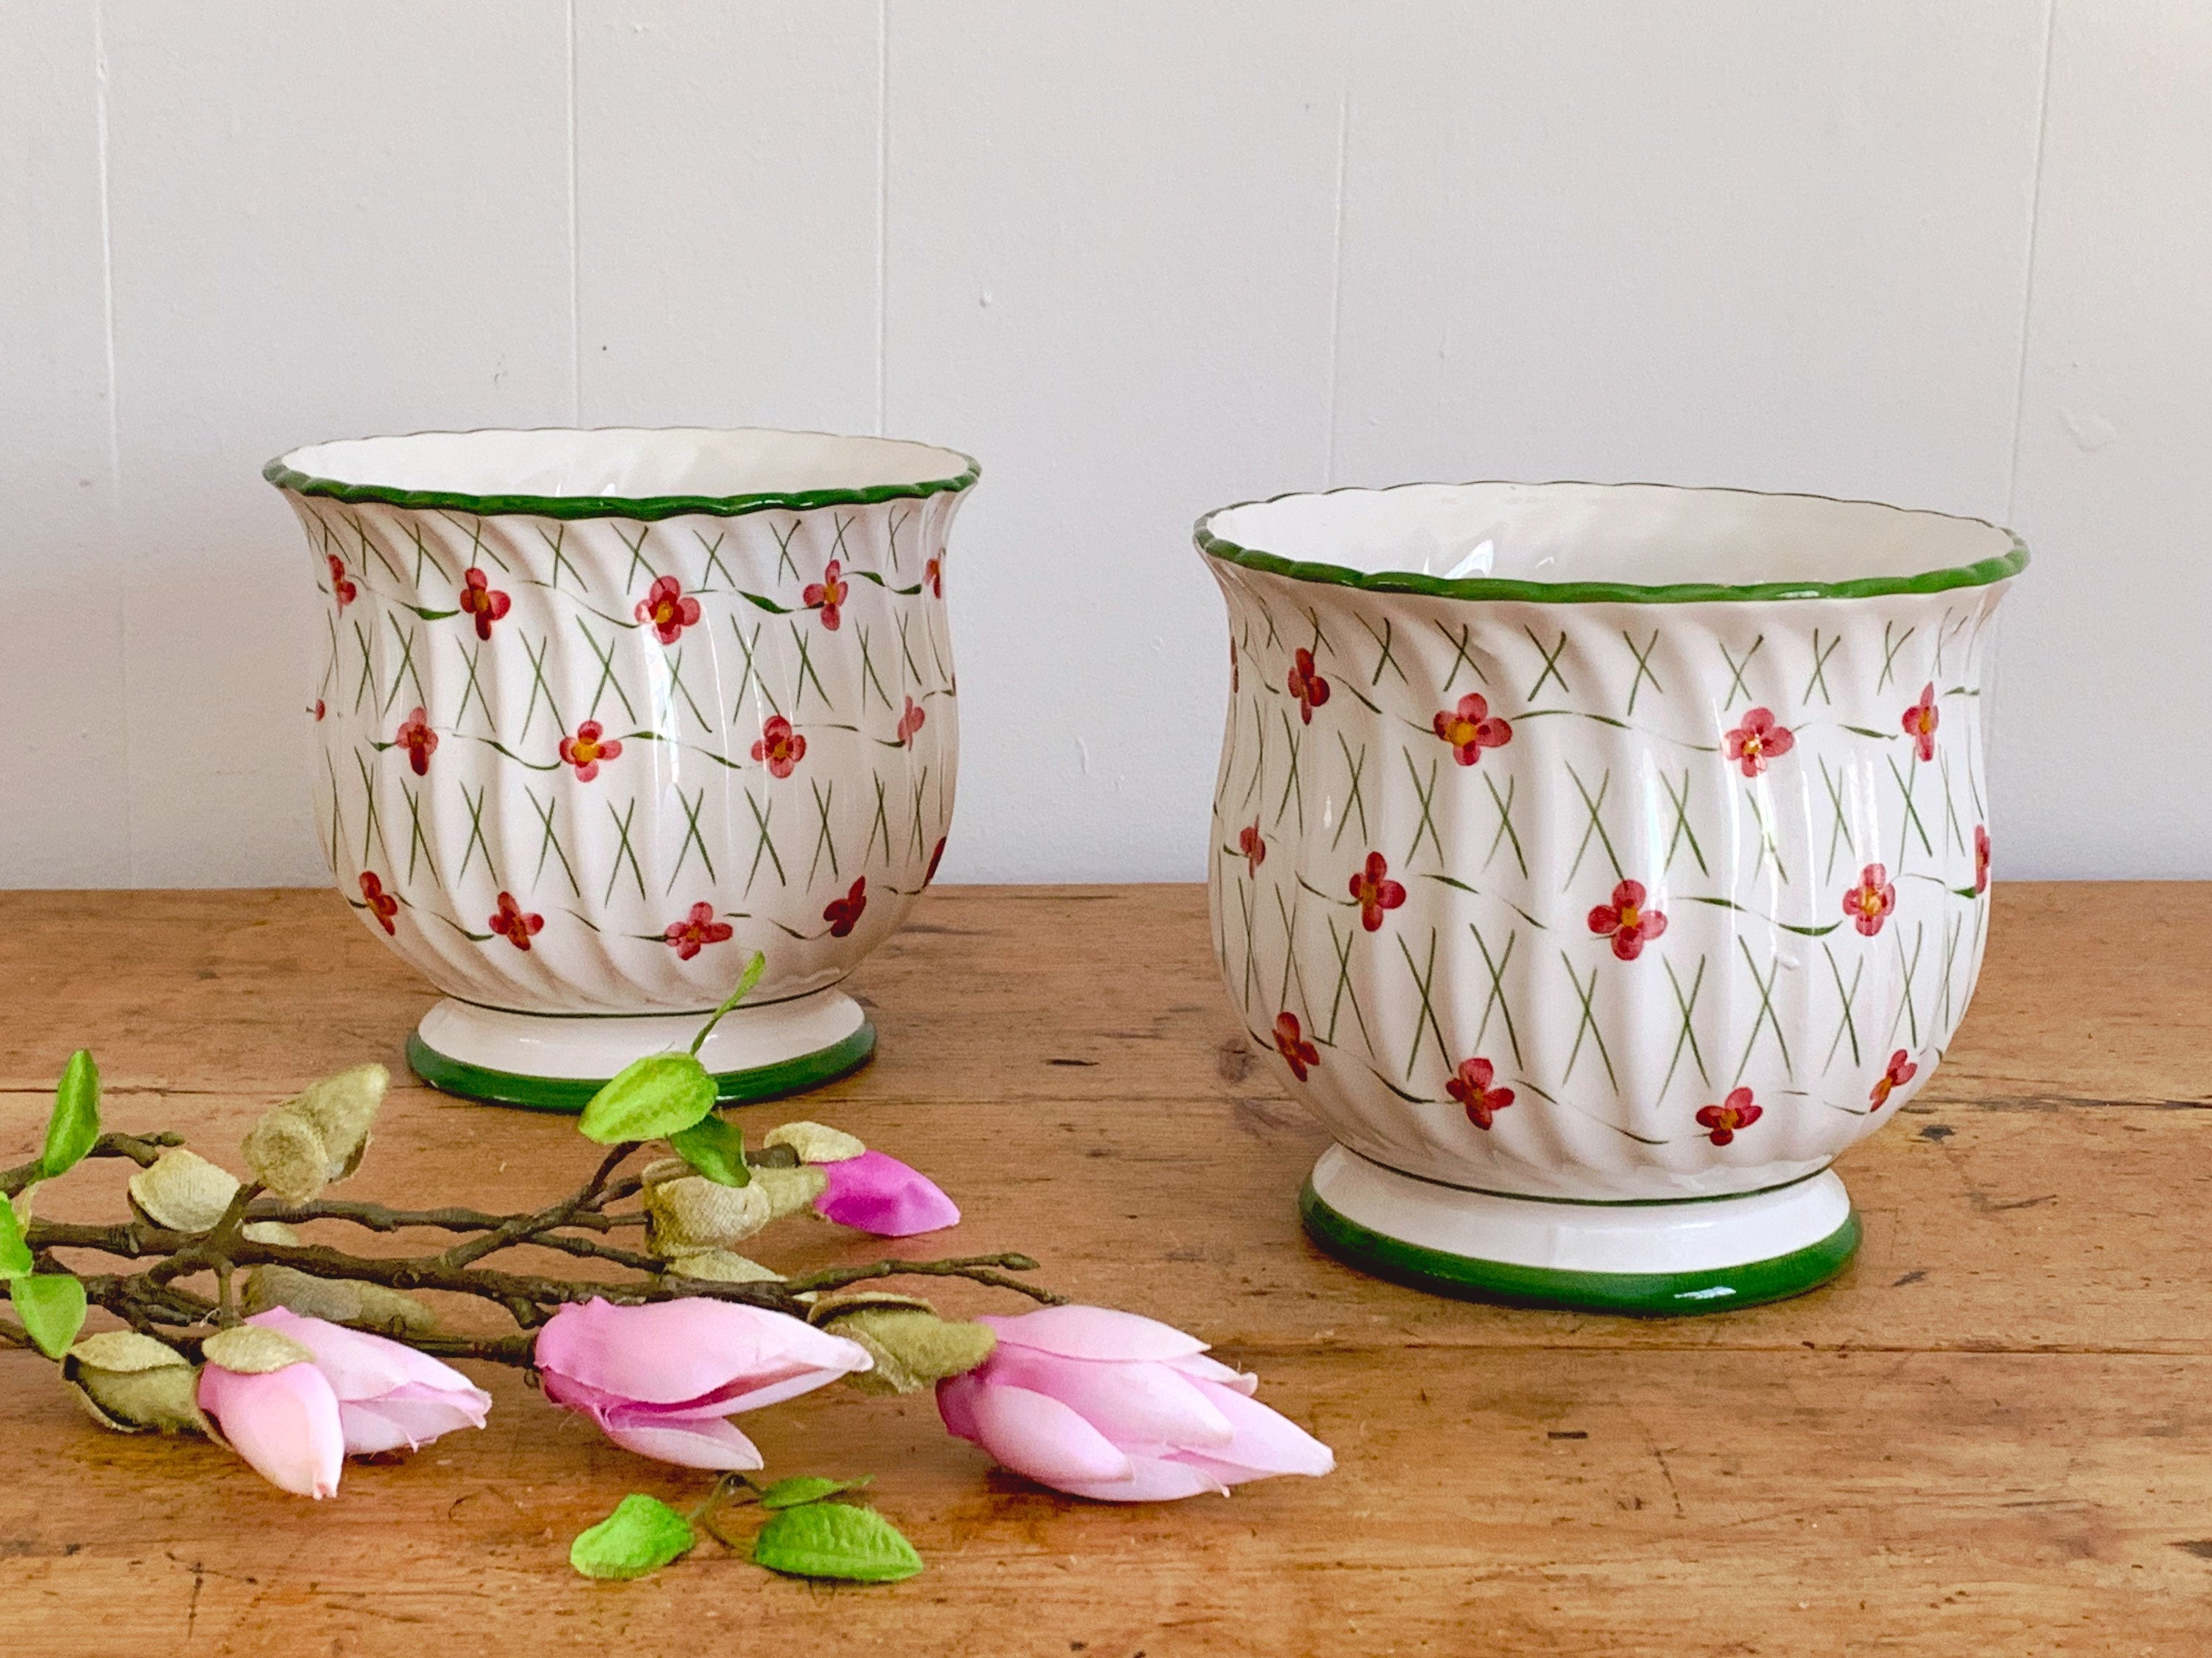 Pair of Vintage Ceramic Floral Pottery Jardiniere Planter Hand Painted in Portugal | Indoor Flower Pot with Pink Flowers and Green Trim